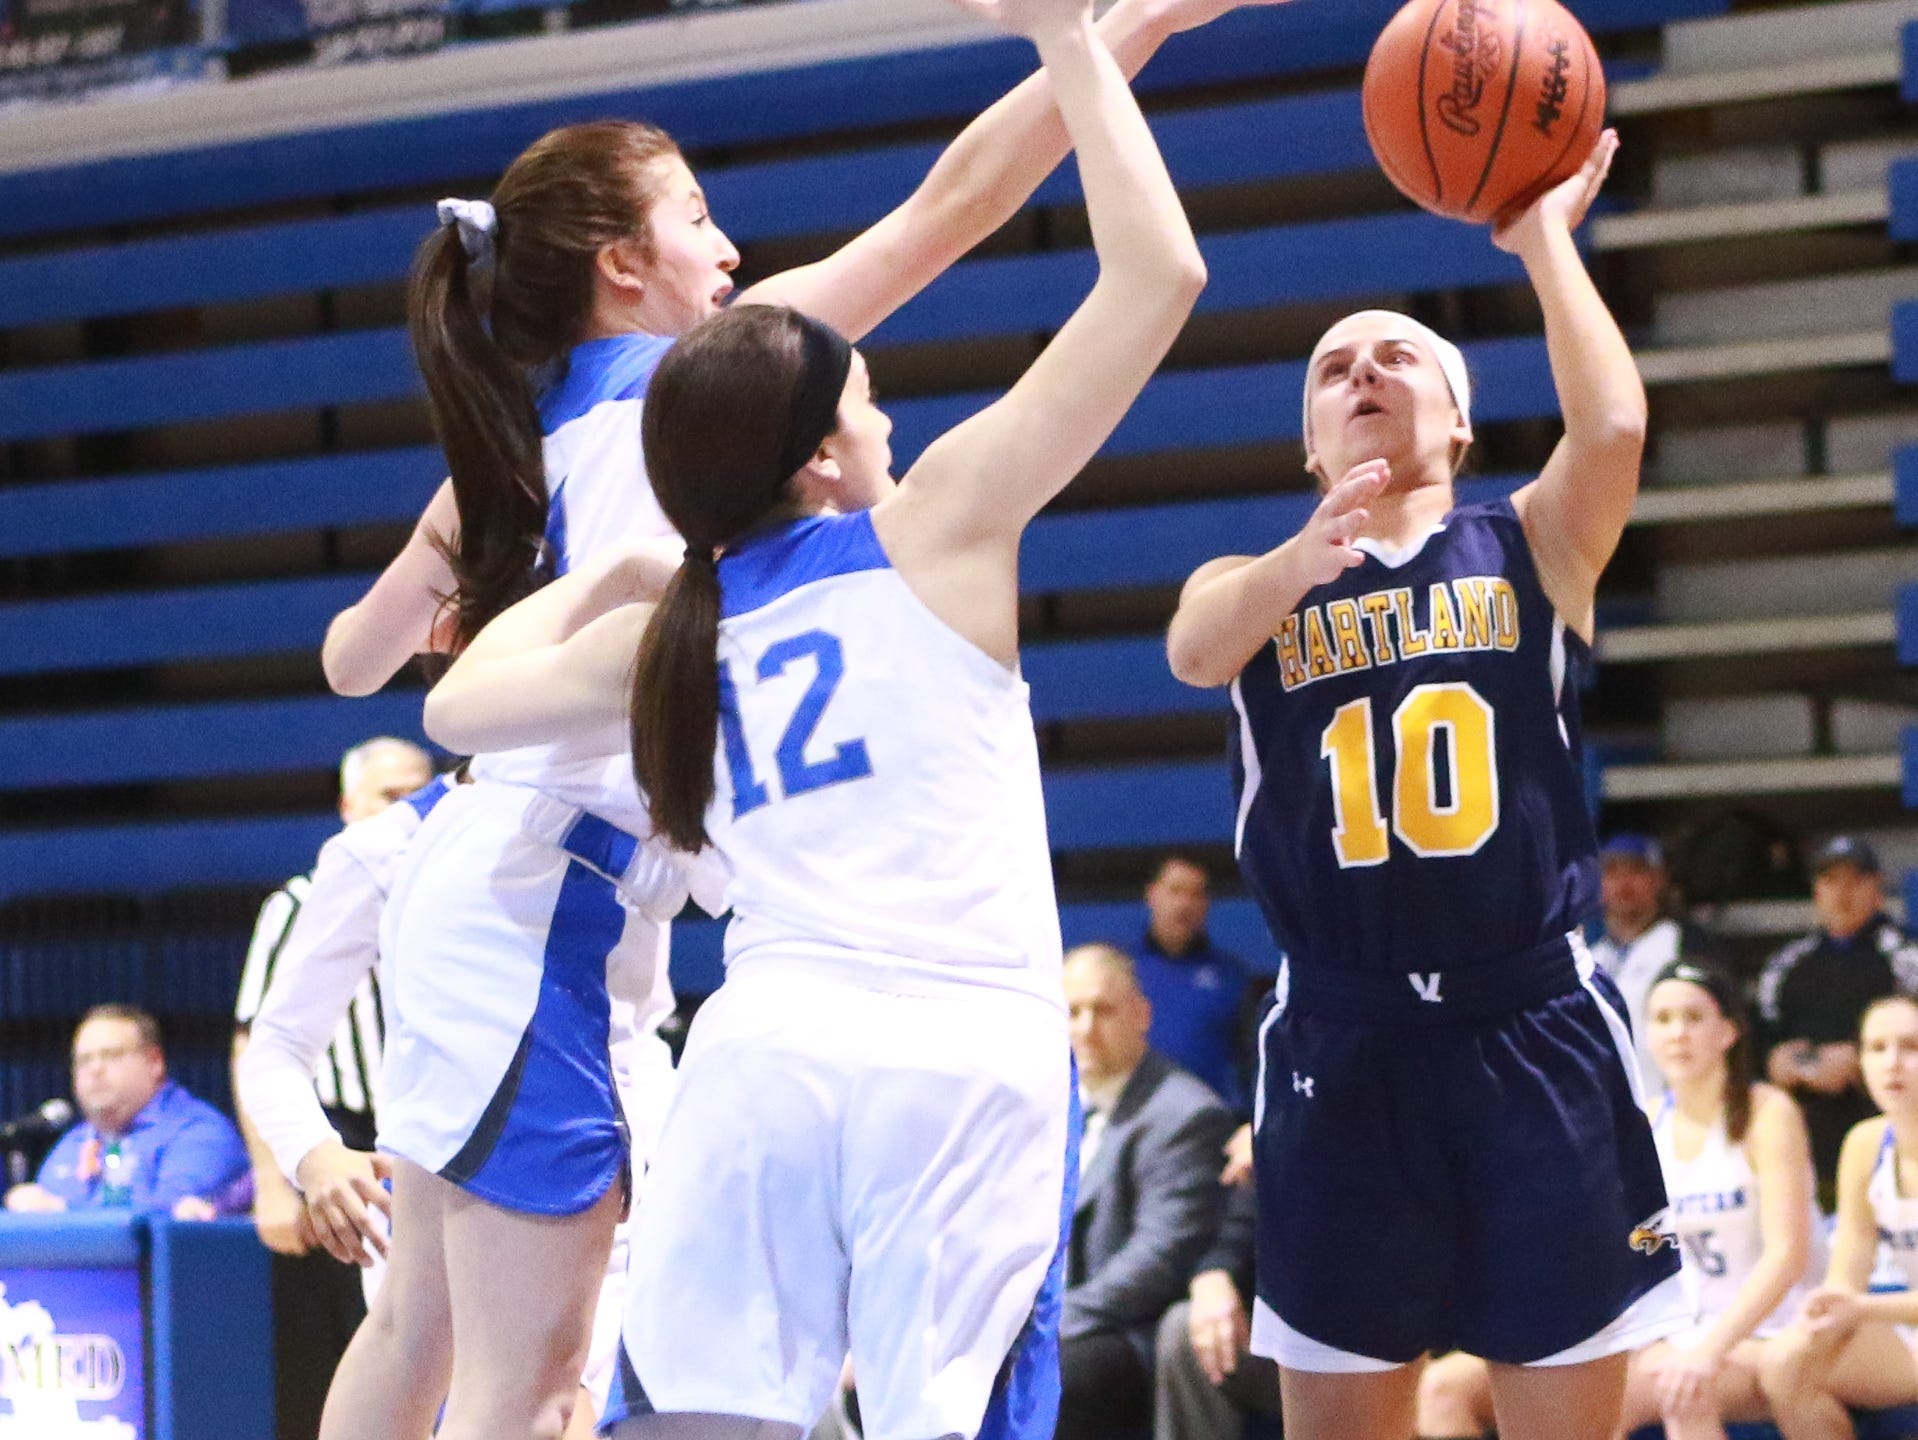 Hartland's Nikki Dompierre (10) scored a career-high 26 points in a 50-46 victory over Walled Lake Western in a regional championship basketball game at Lakeland on Wednesday, March 13, 2019.